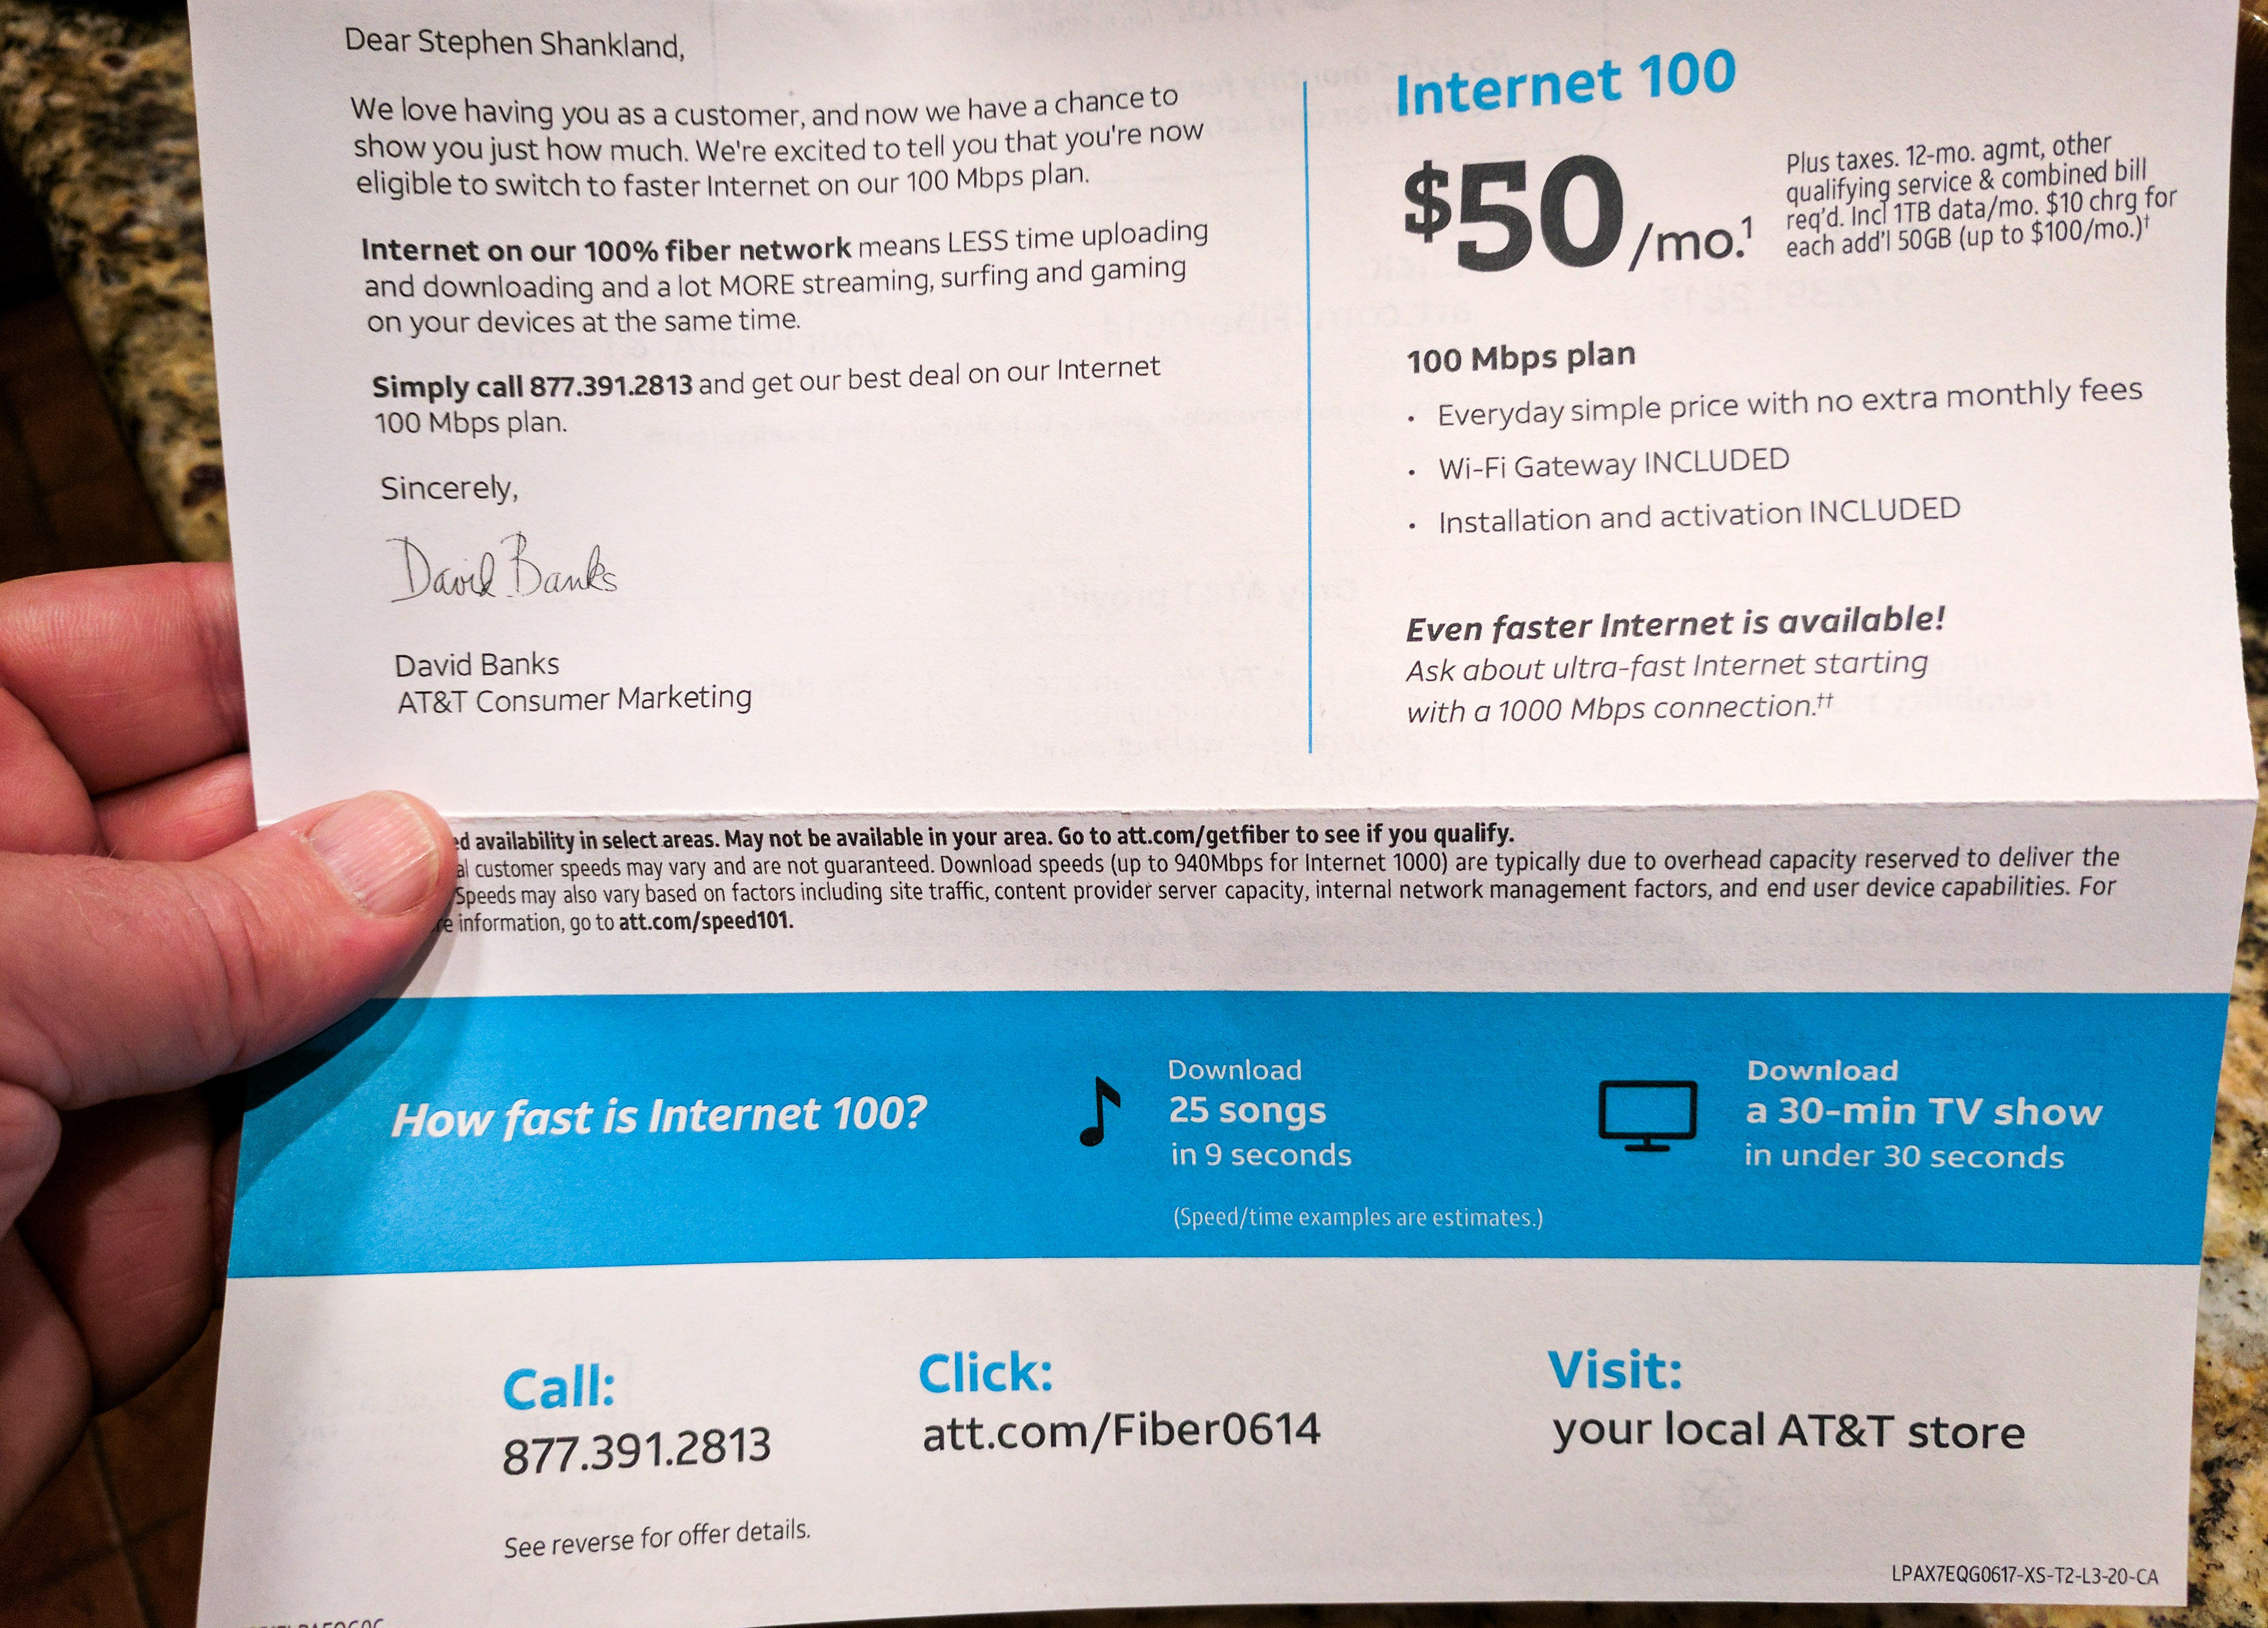 AT&T Fiber can boast of high upload speeds, but in this promotional mailing, it only mentions download speeds.